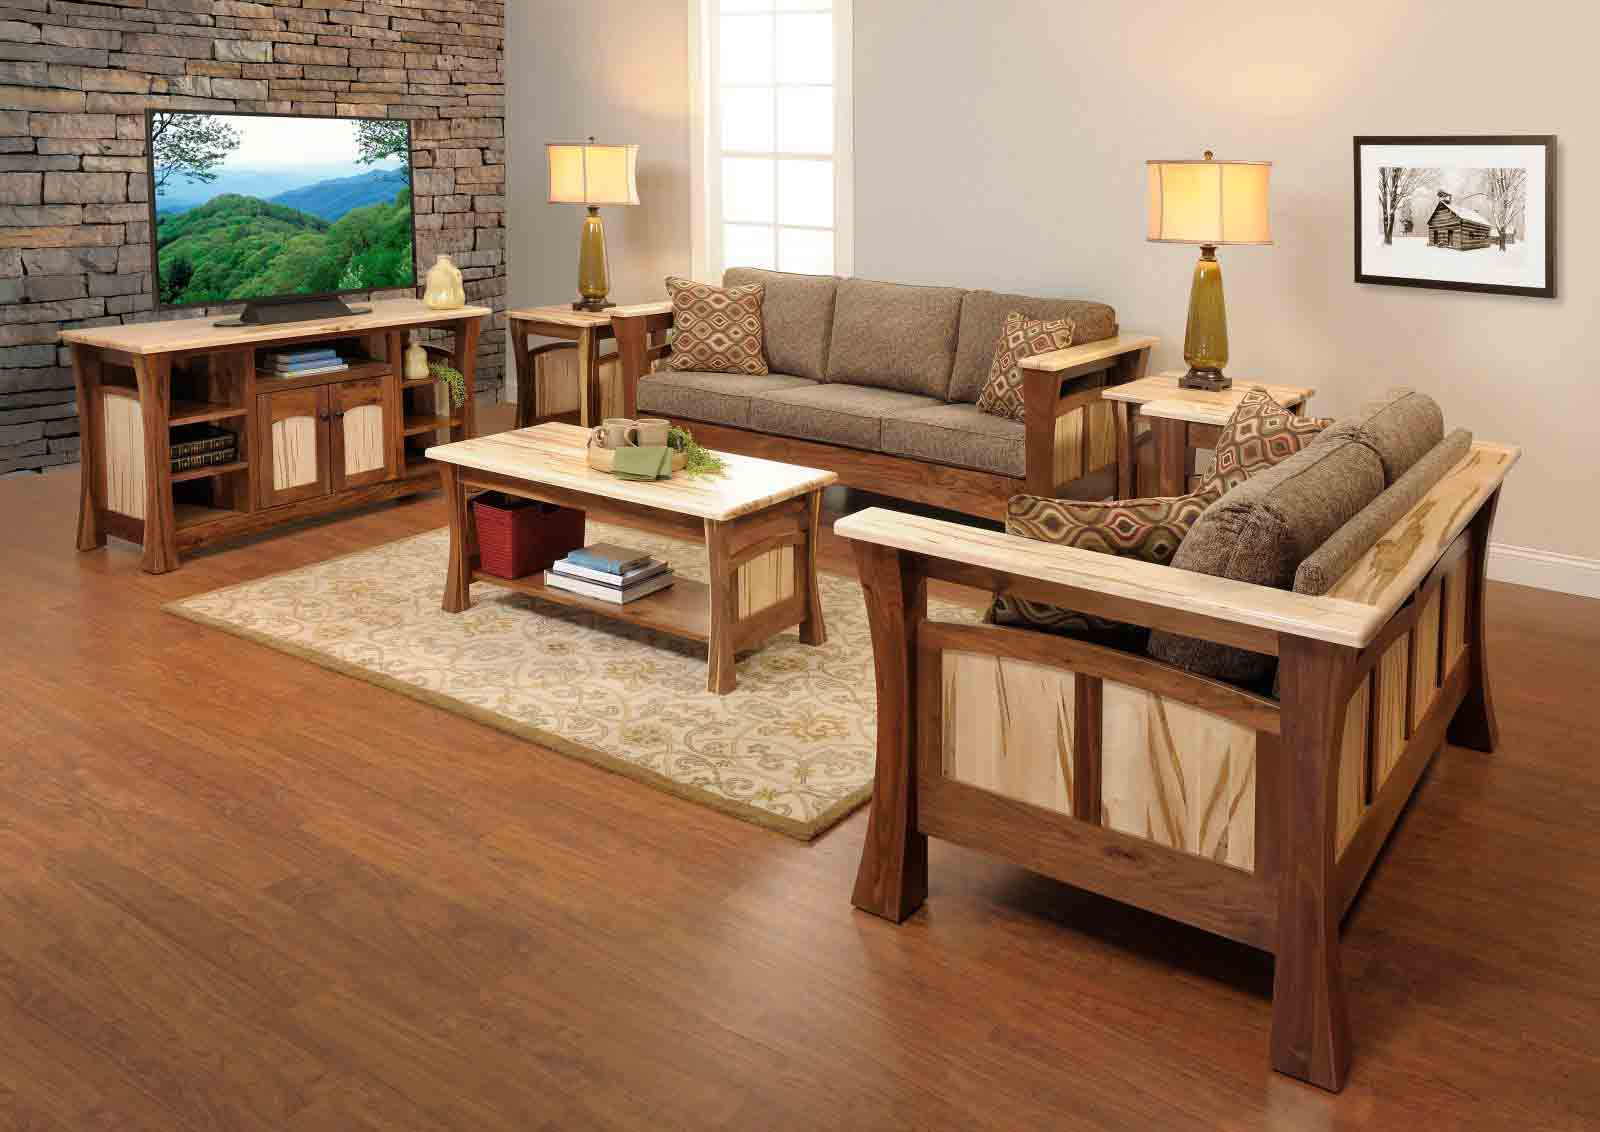 Amish Furniture sofa chairs